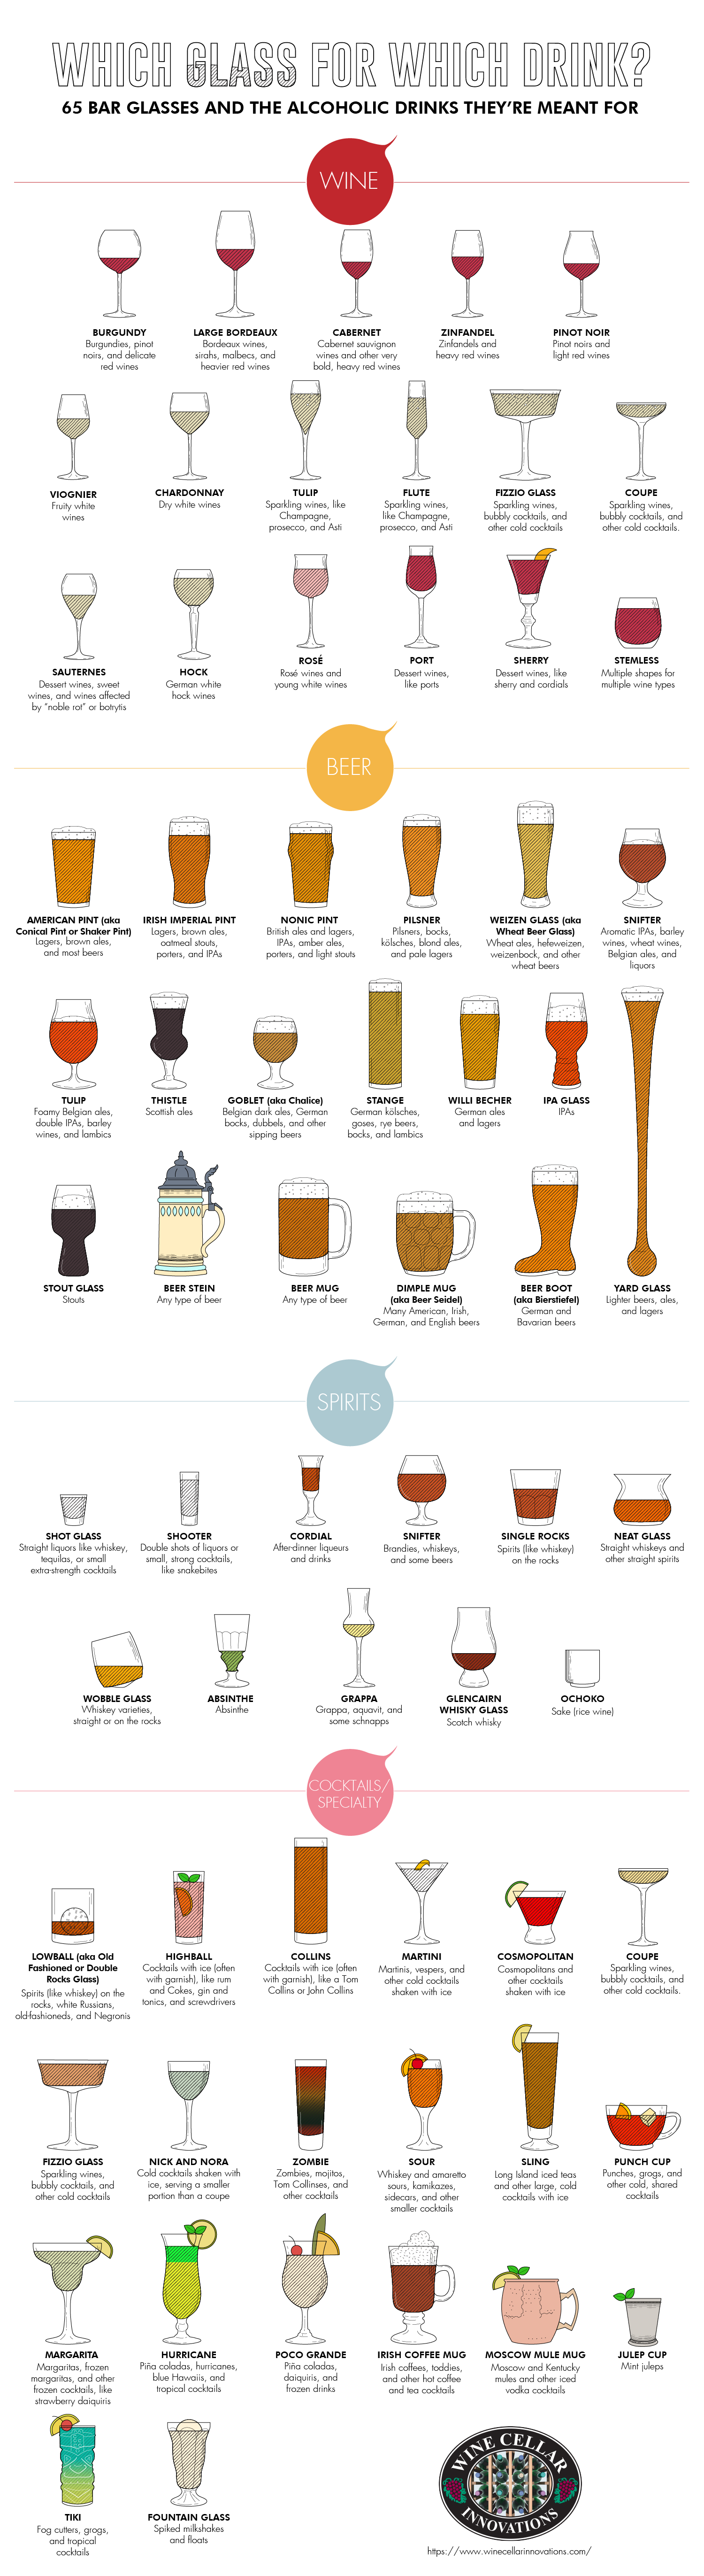 Which Glass for Which Drink? 65 Bar Glasses and The Alcoholic Drinks They're Meant For